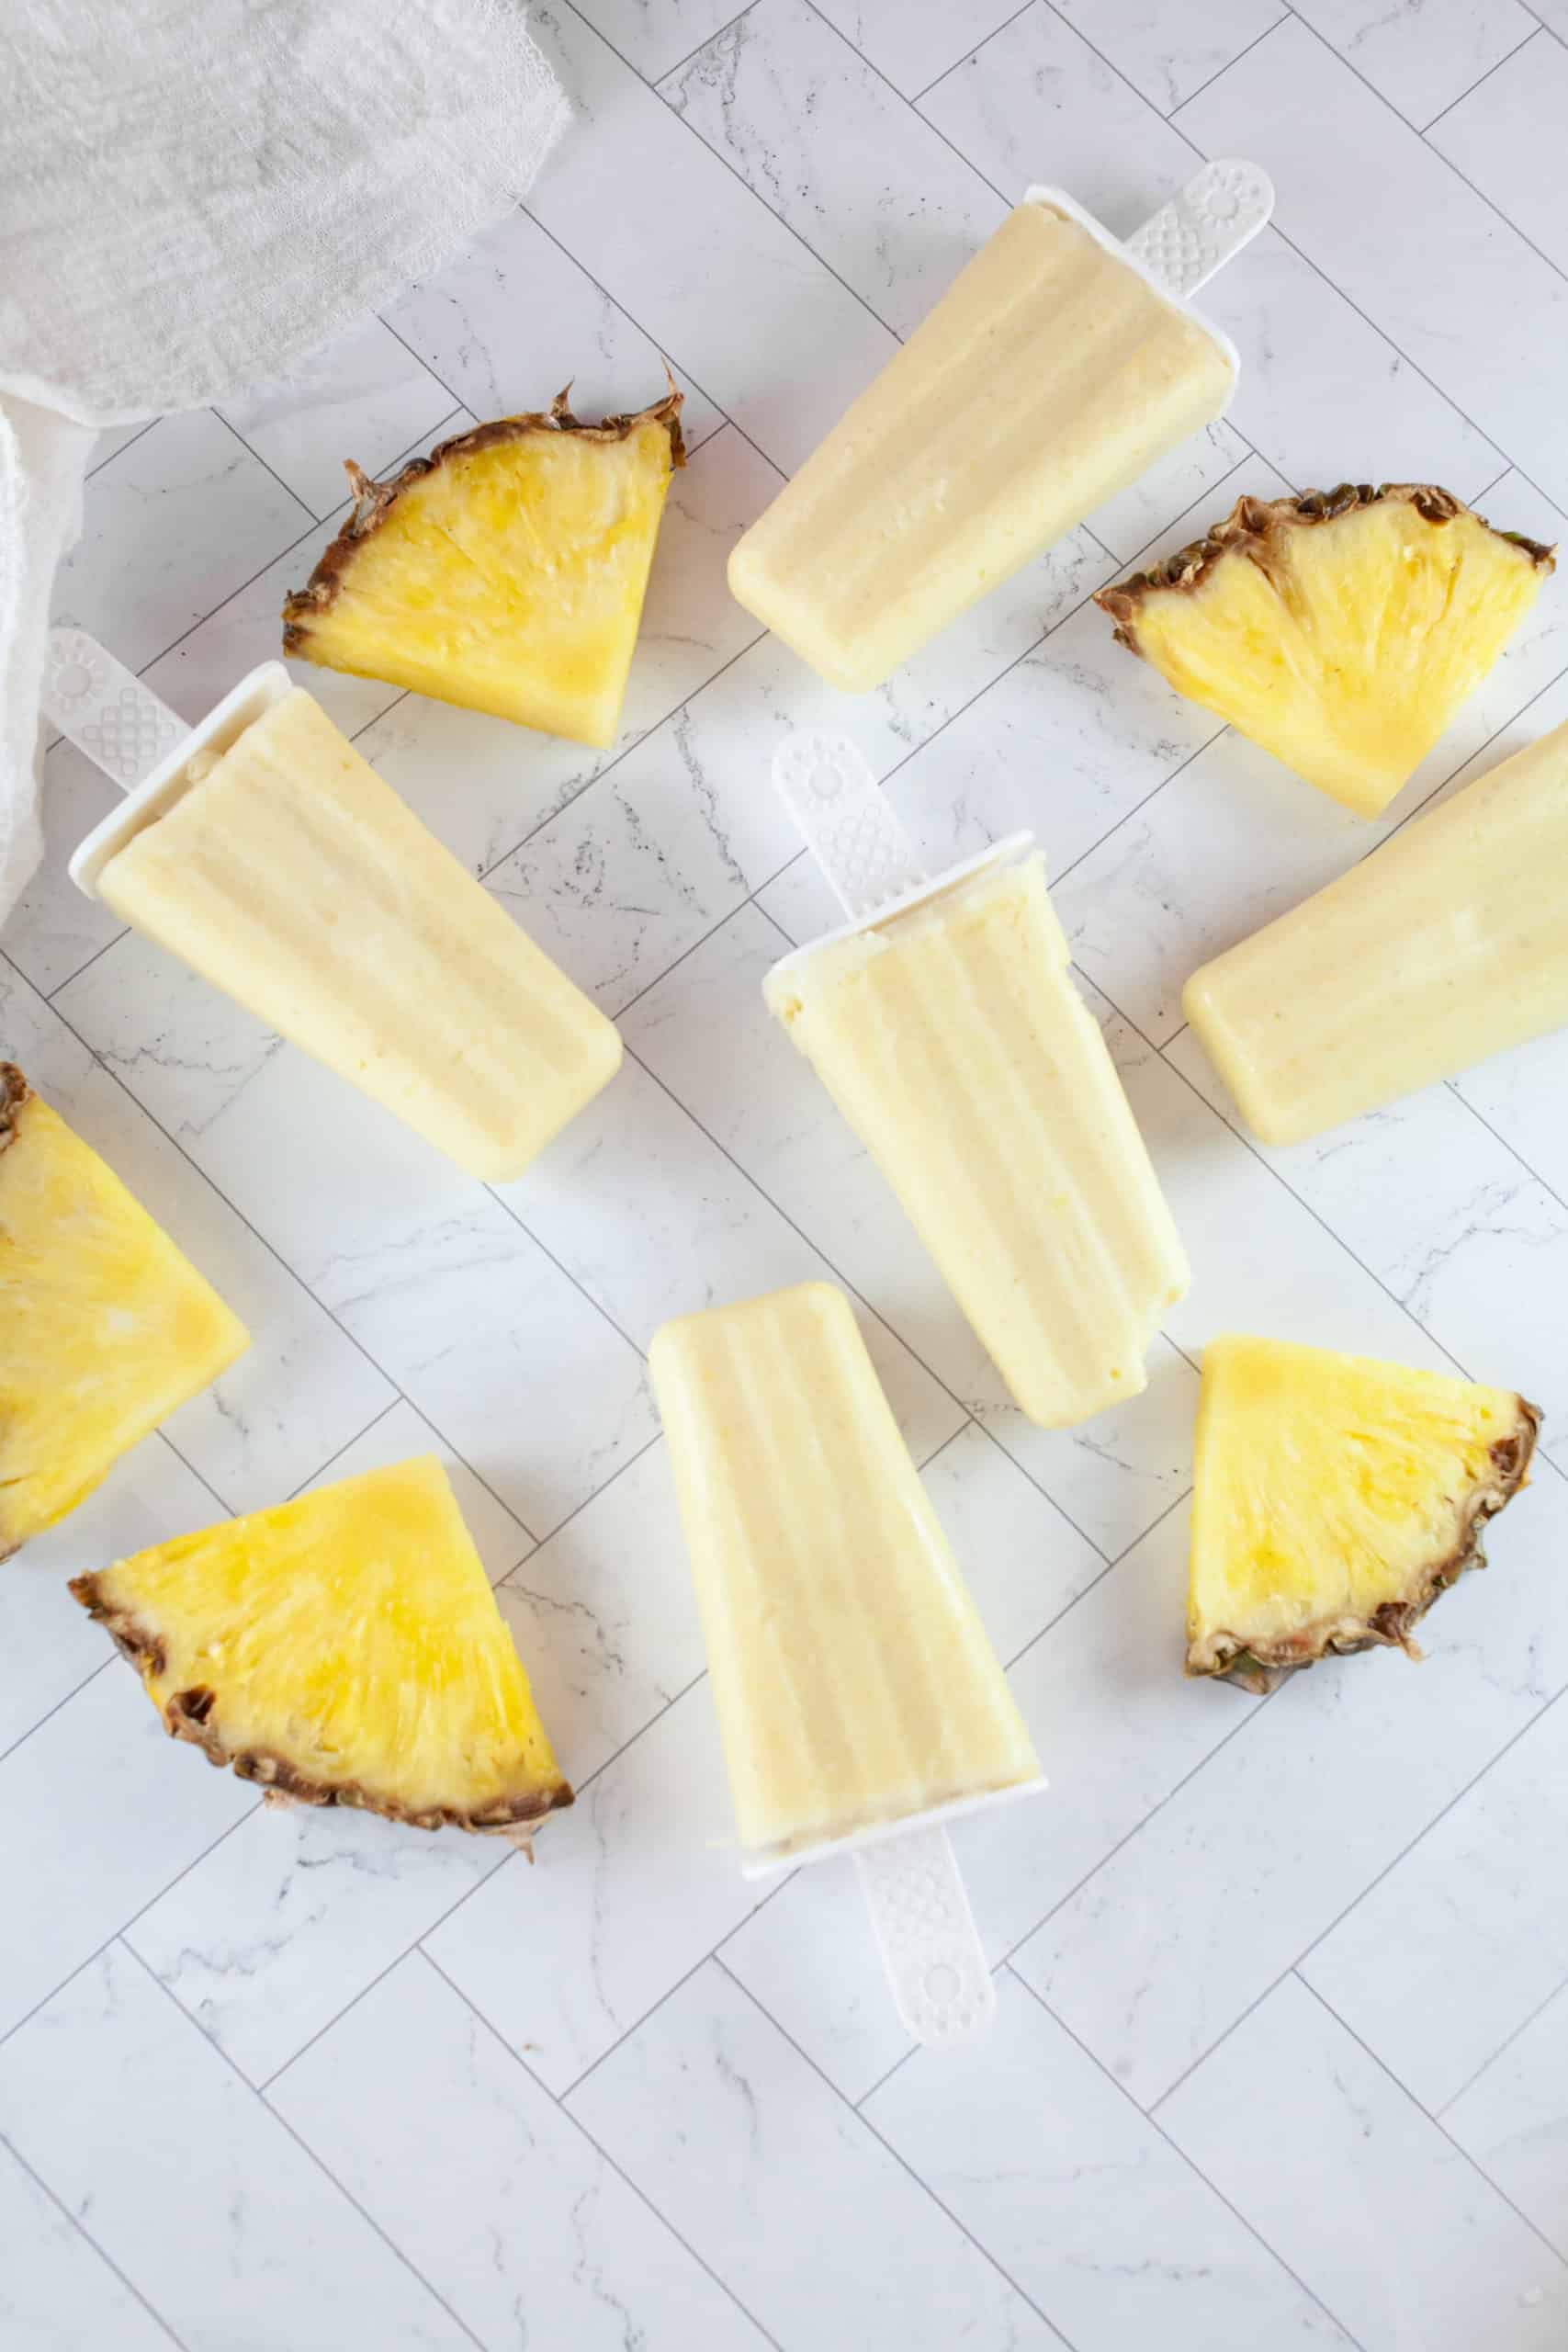 Slices of pineapple surround pina colada popsicles.